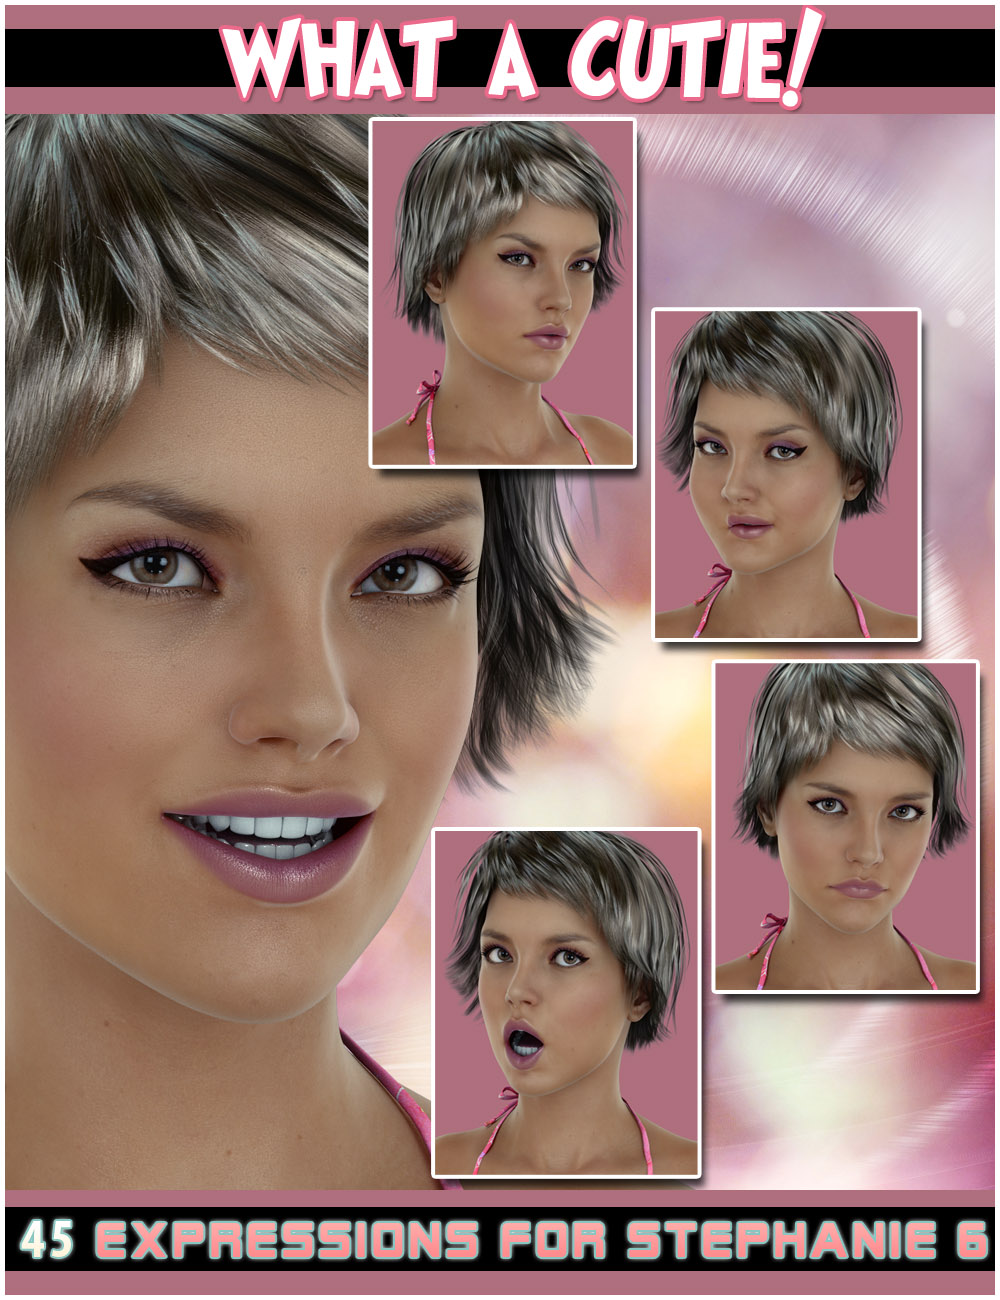 What a Cutie! Expressions for Stephanie 6 by: 3DCelebrity, 3D Models by Daz 3D